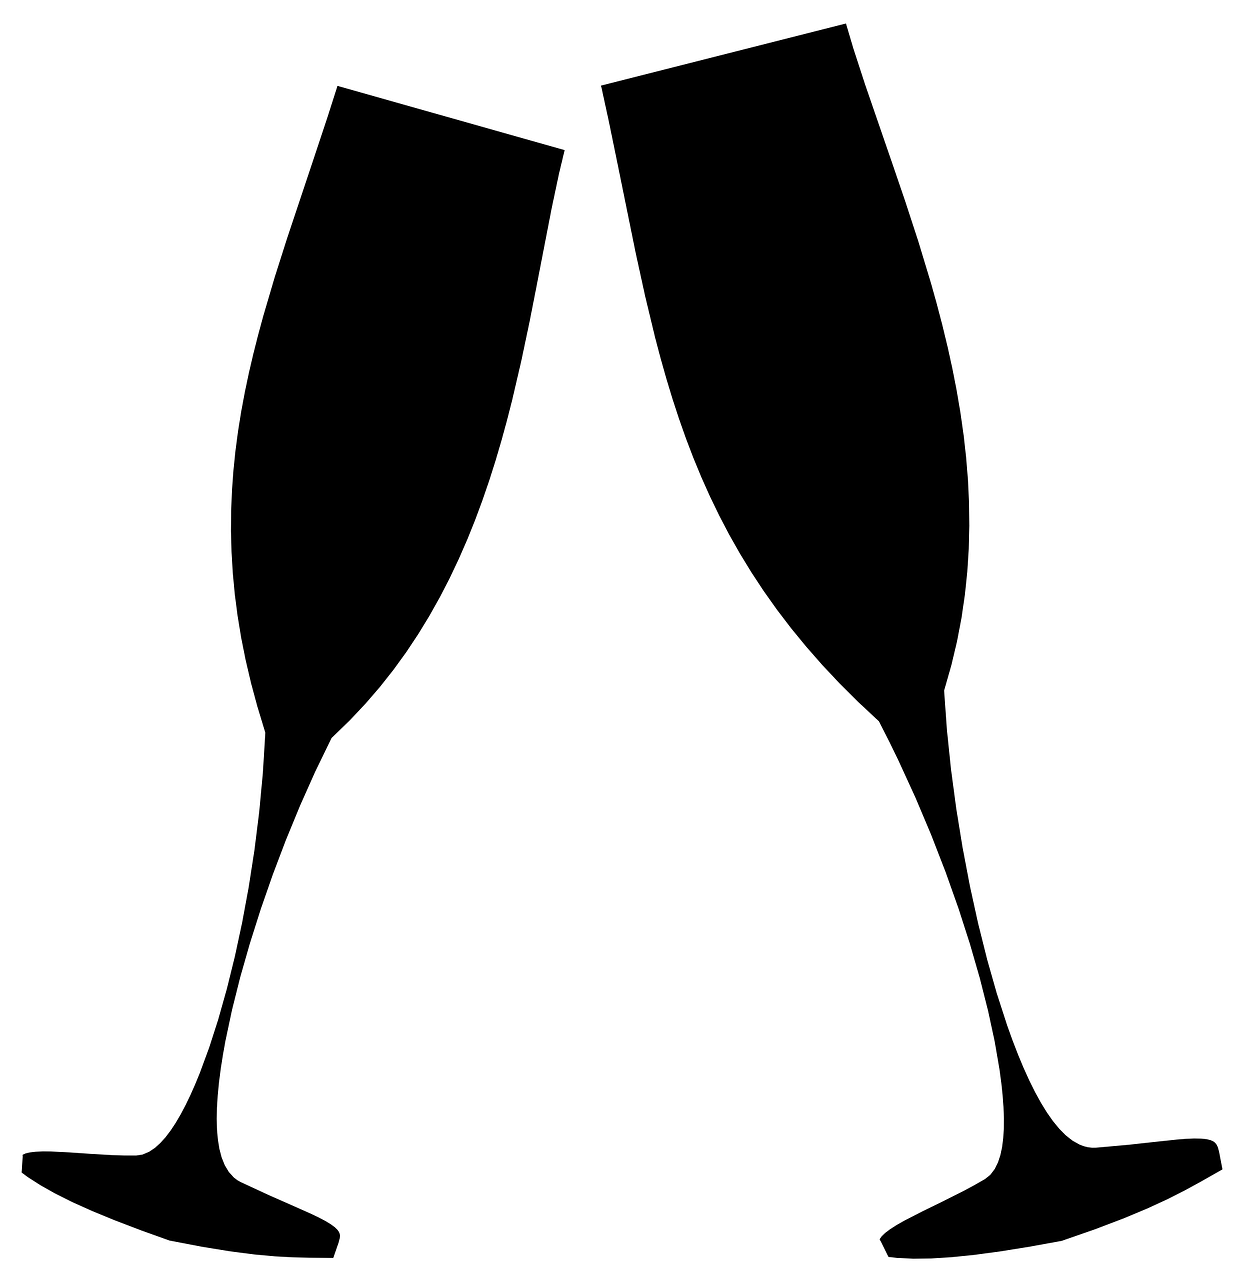 Champaign clipart champagne toast. Free image on pixabay